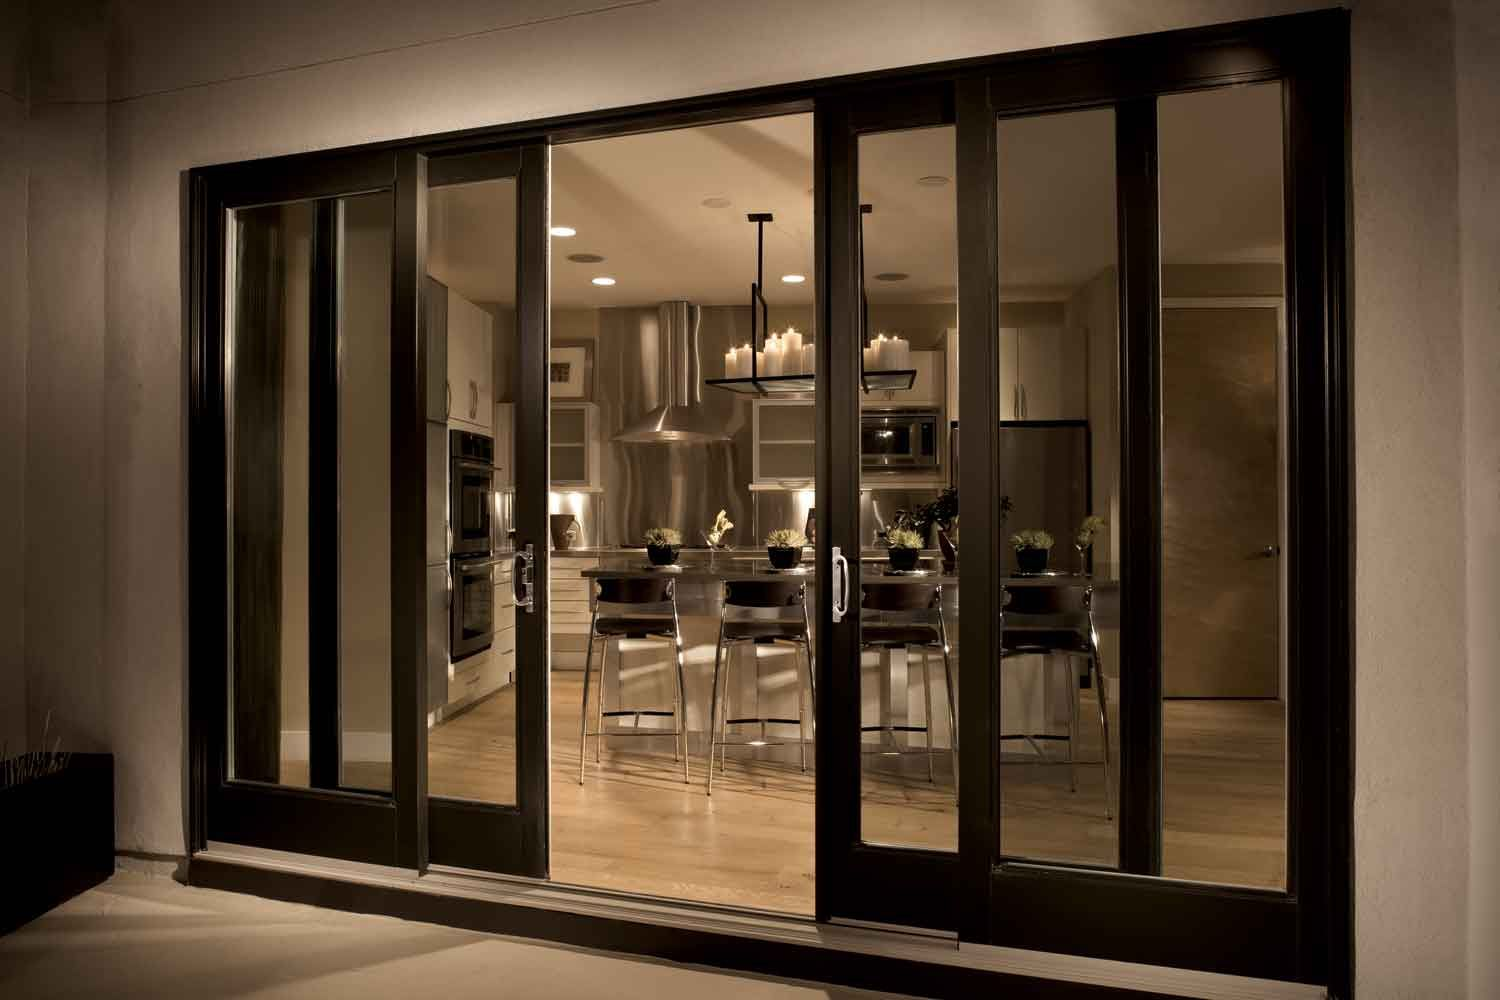 Fiberglass Sliding Patio Doors, 2, 3 Or 4 Panel Configurations